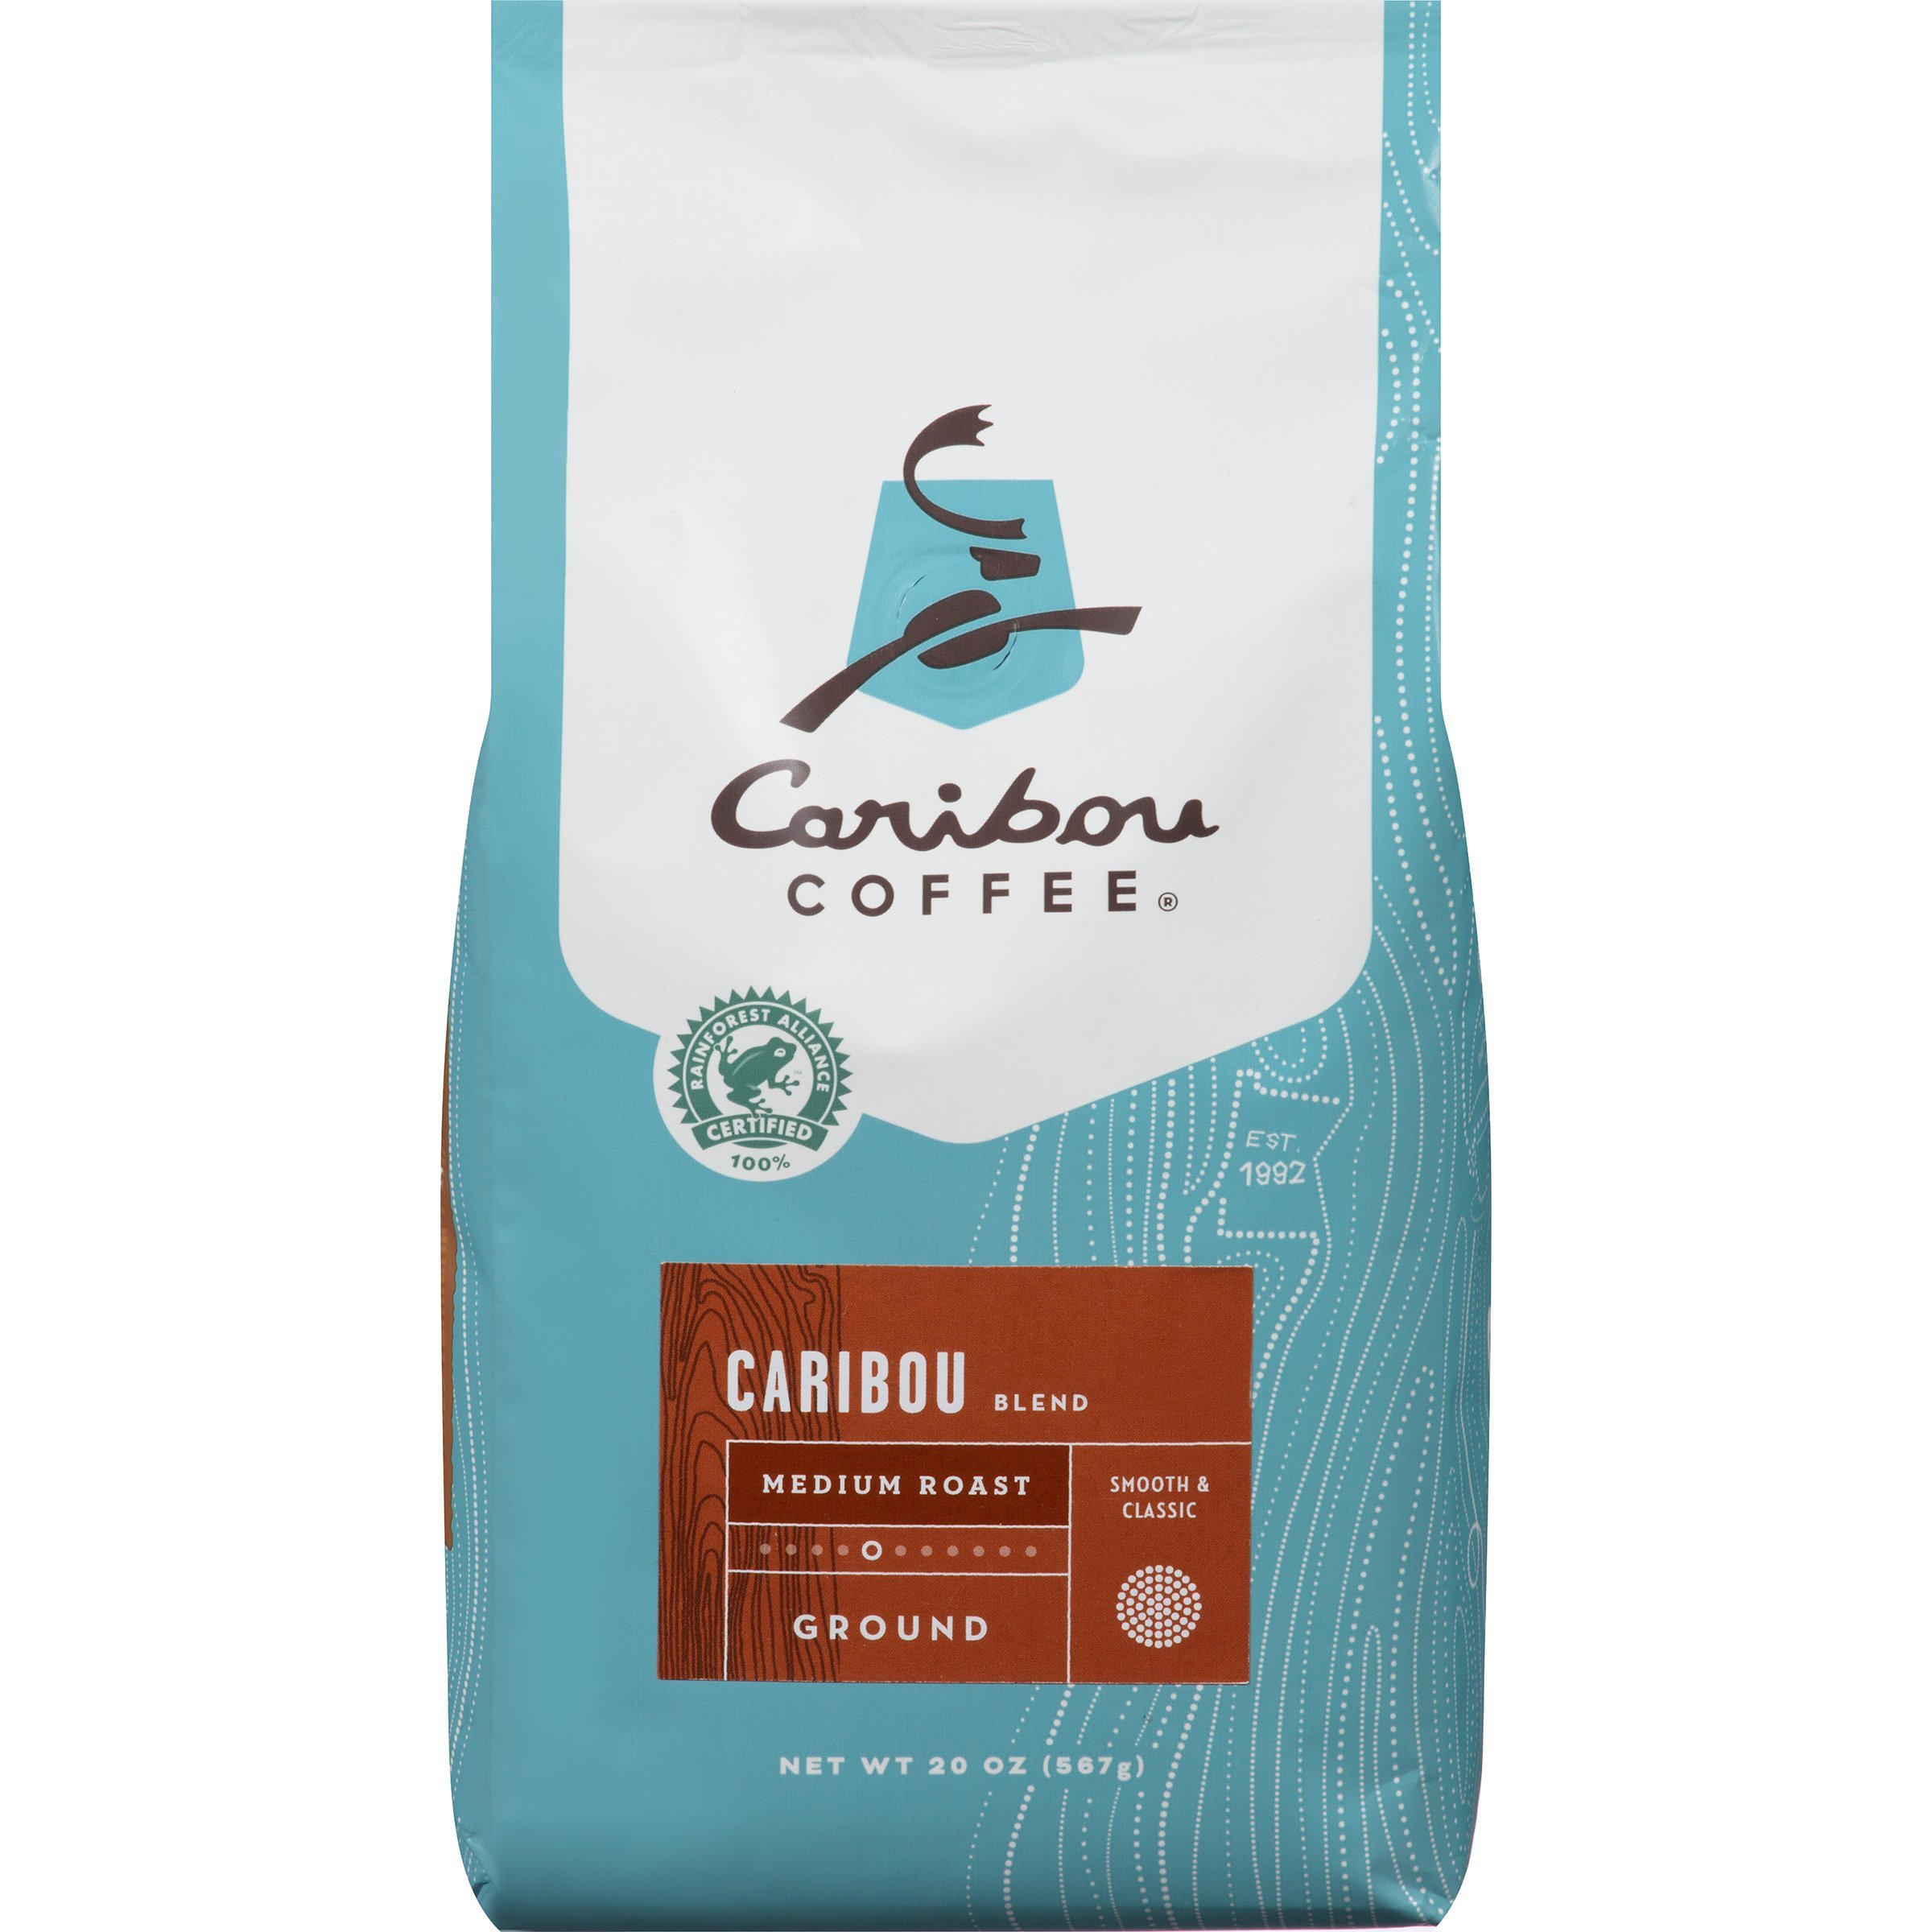 Caribou Coffee Caribou Blend, Medium Roast Ground Coffee, 20 Ounce Bag, Rainforest Alliance Certified by Caribou Coffee